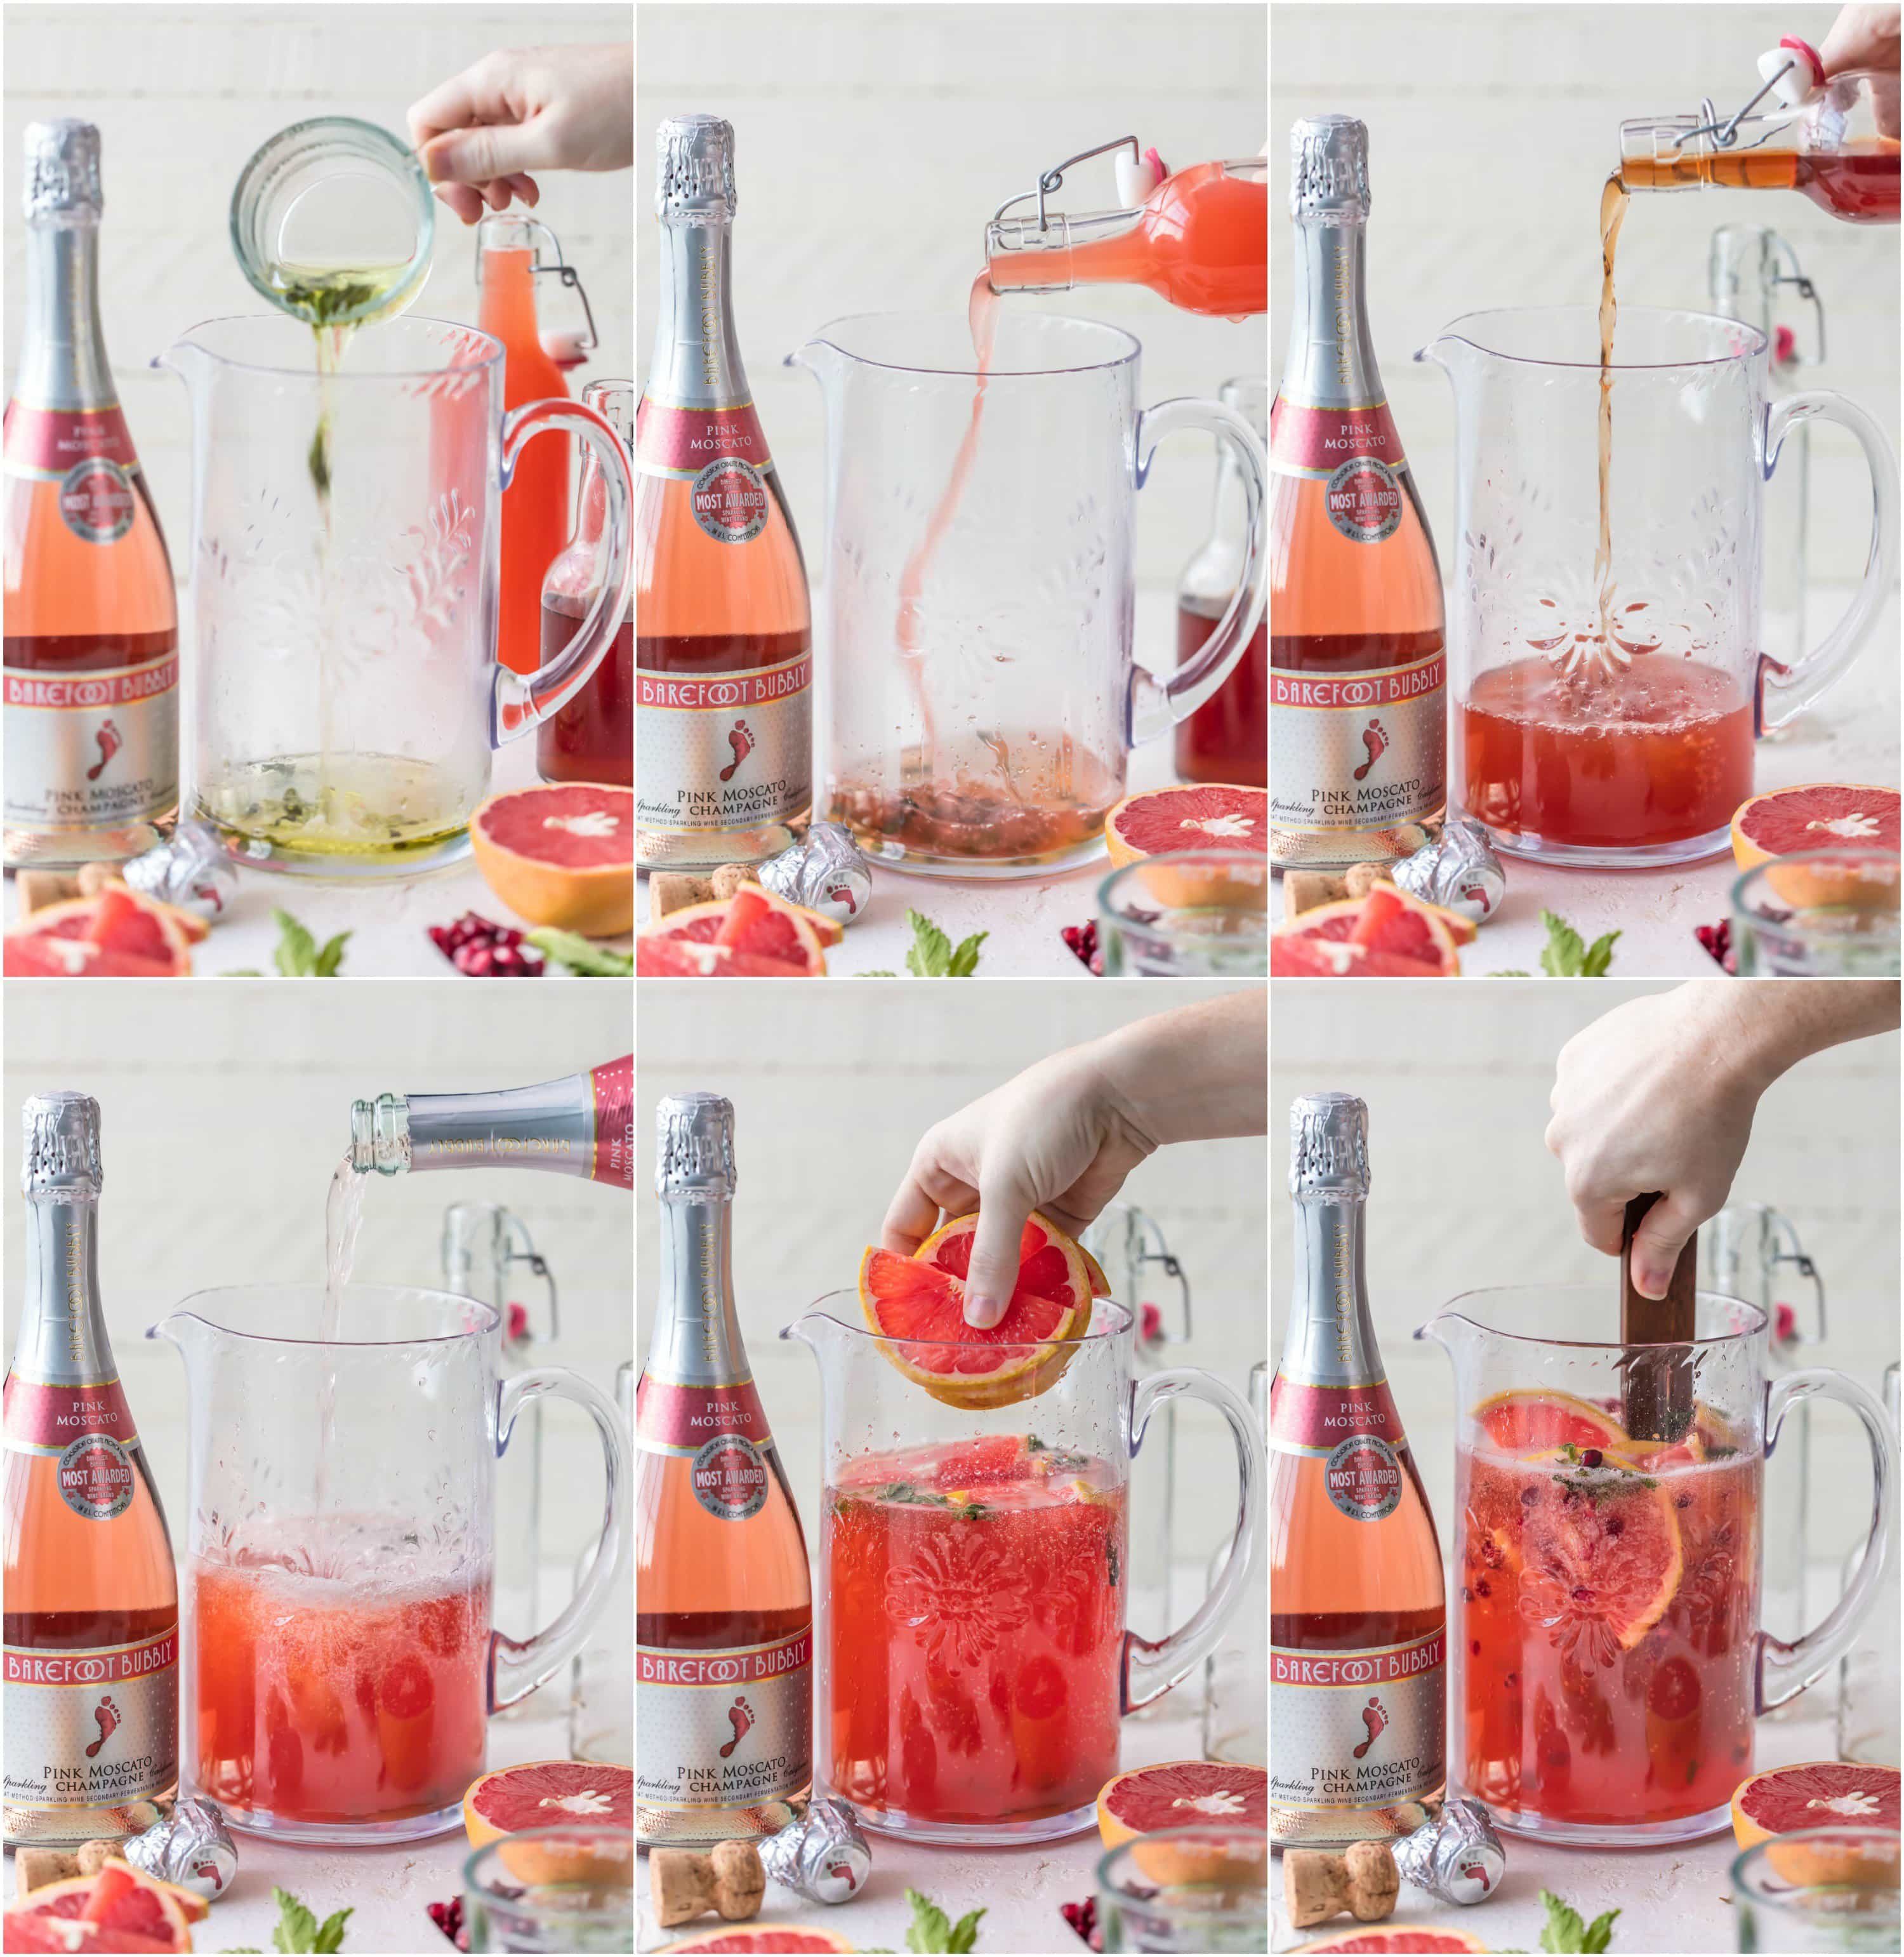 Photo Collage: How to Make Pink Champagne Sangria